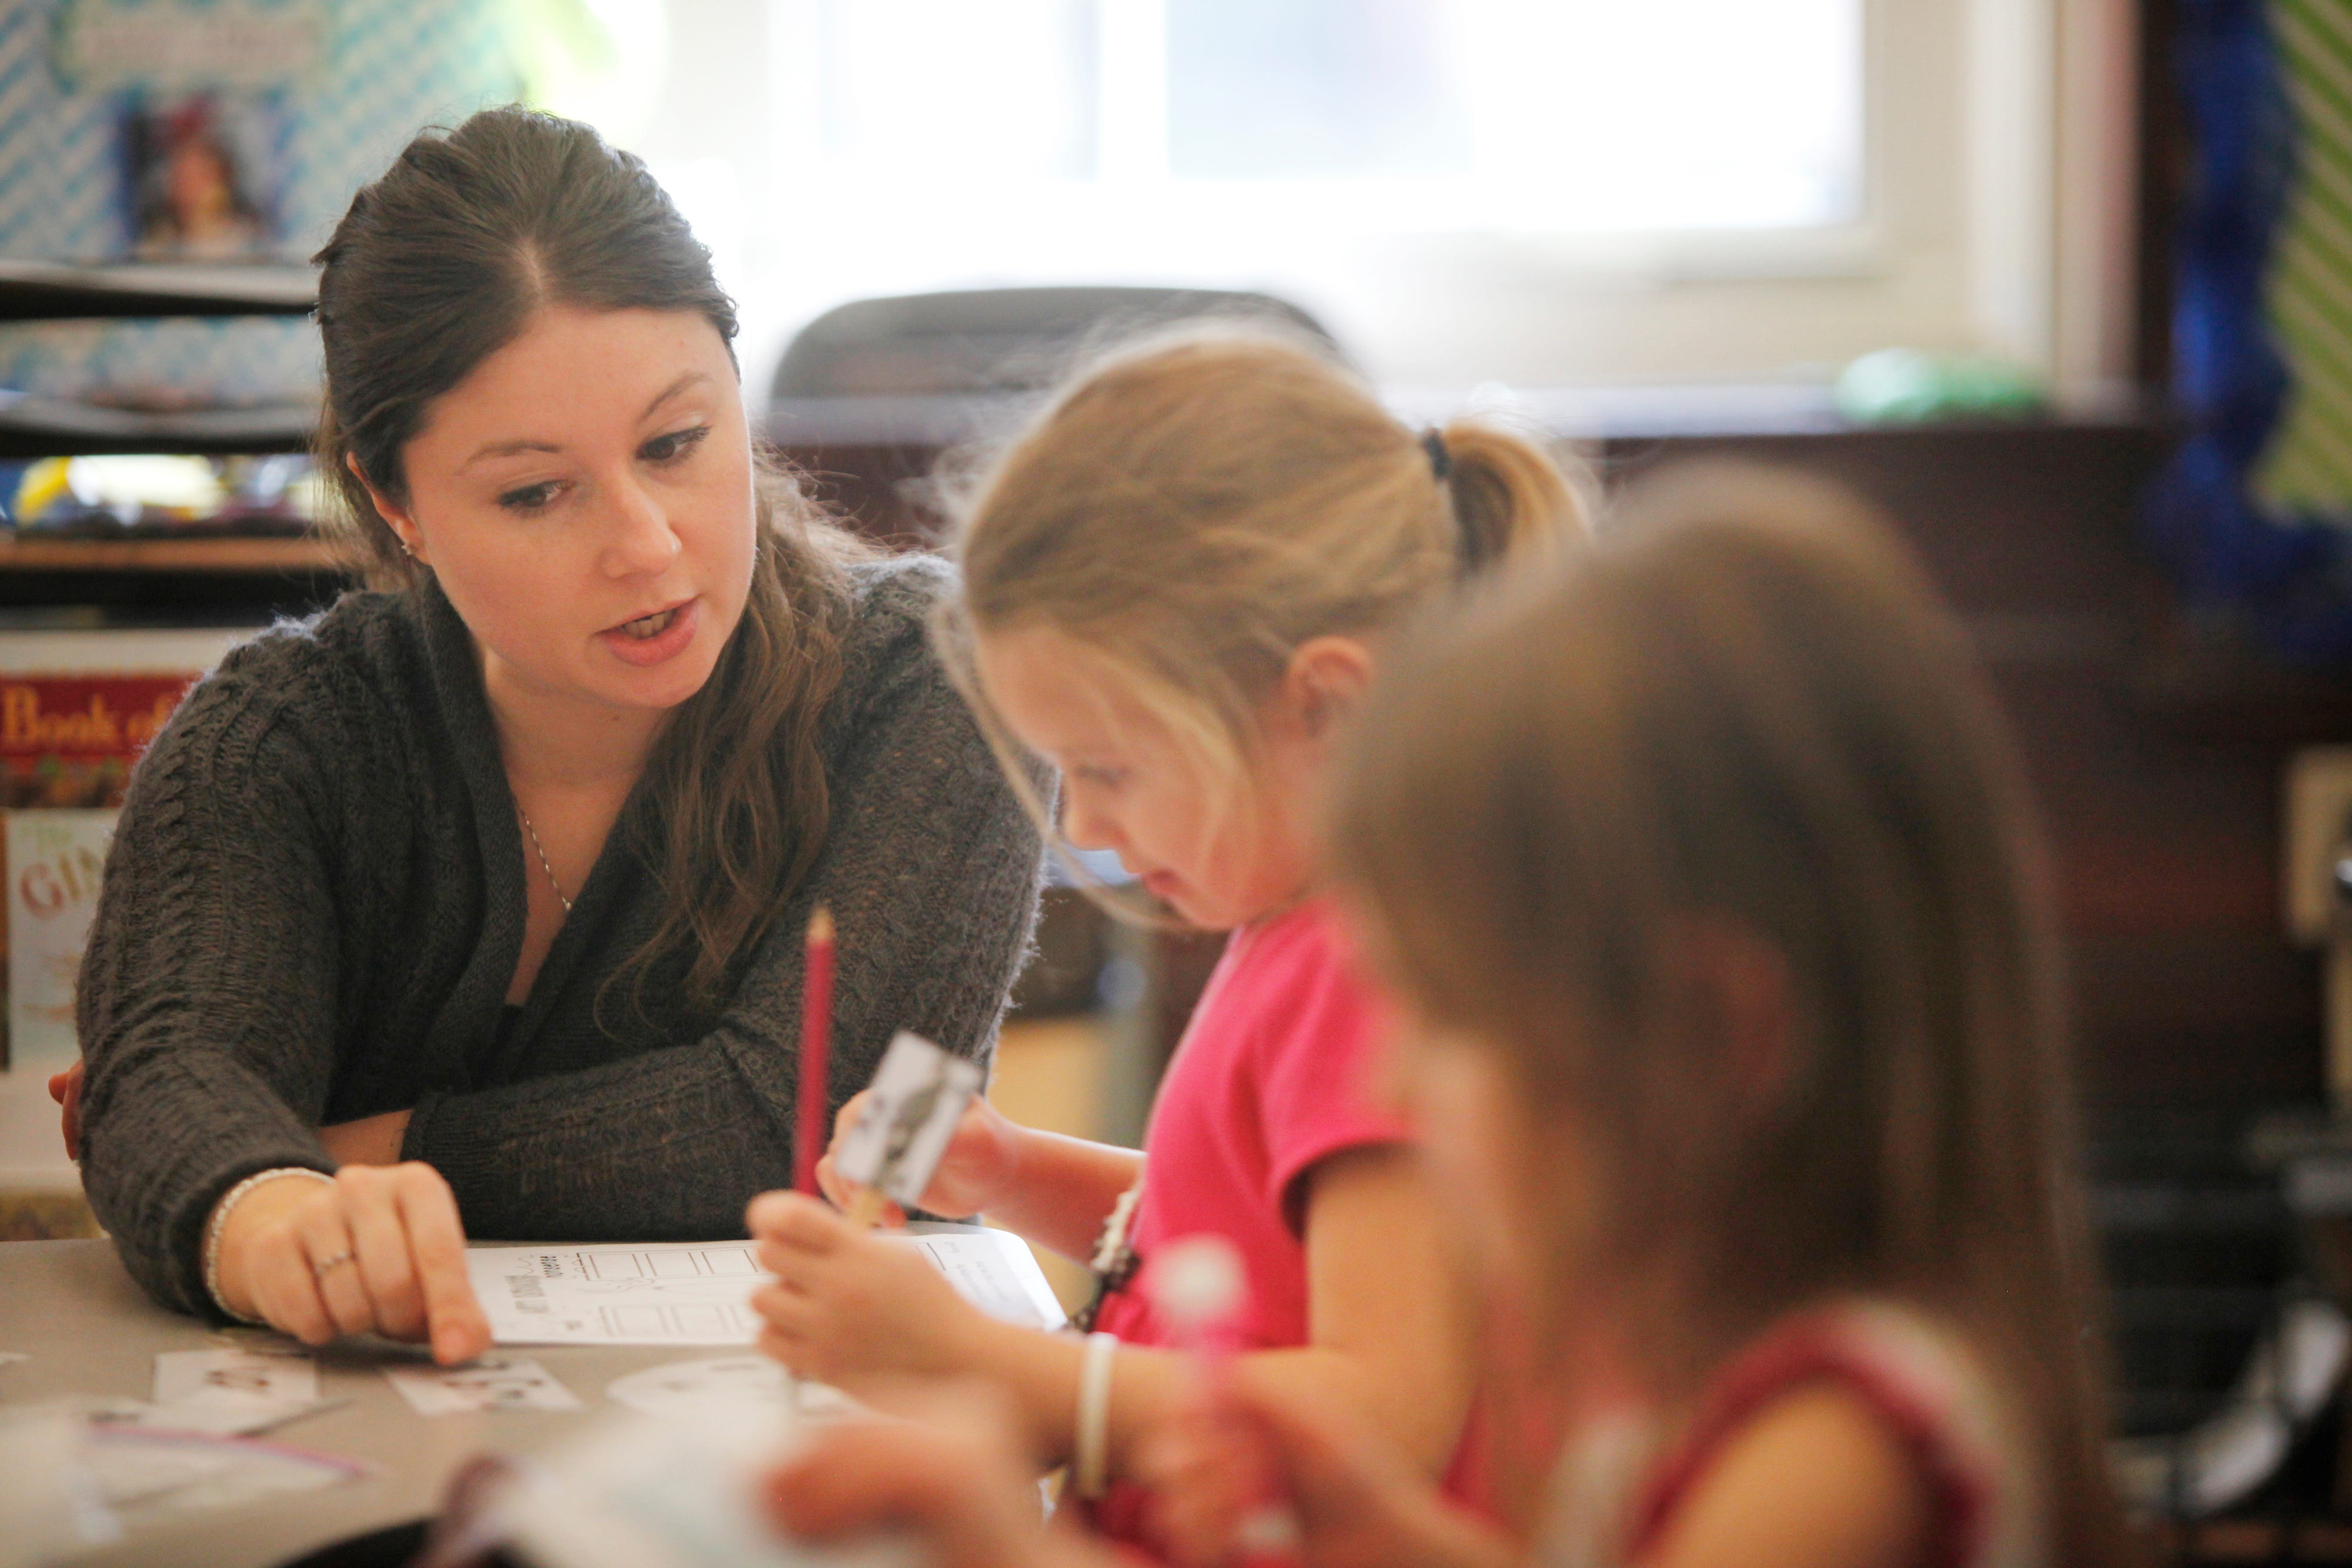 A staff member works with kindergarten students during a lesson at Bloom Elementary School, located in the Tyler Park neighborhood. Dec. 9, 2015.